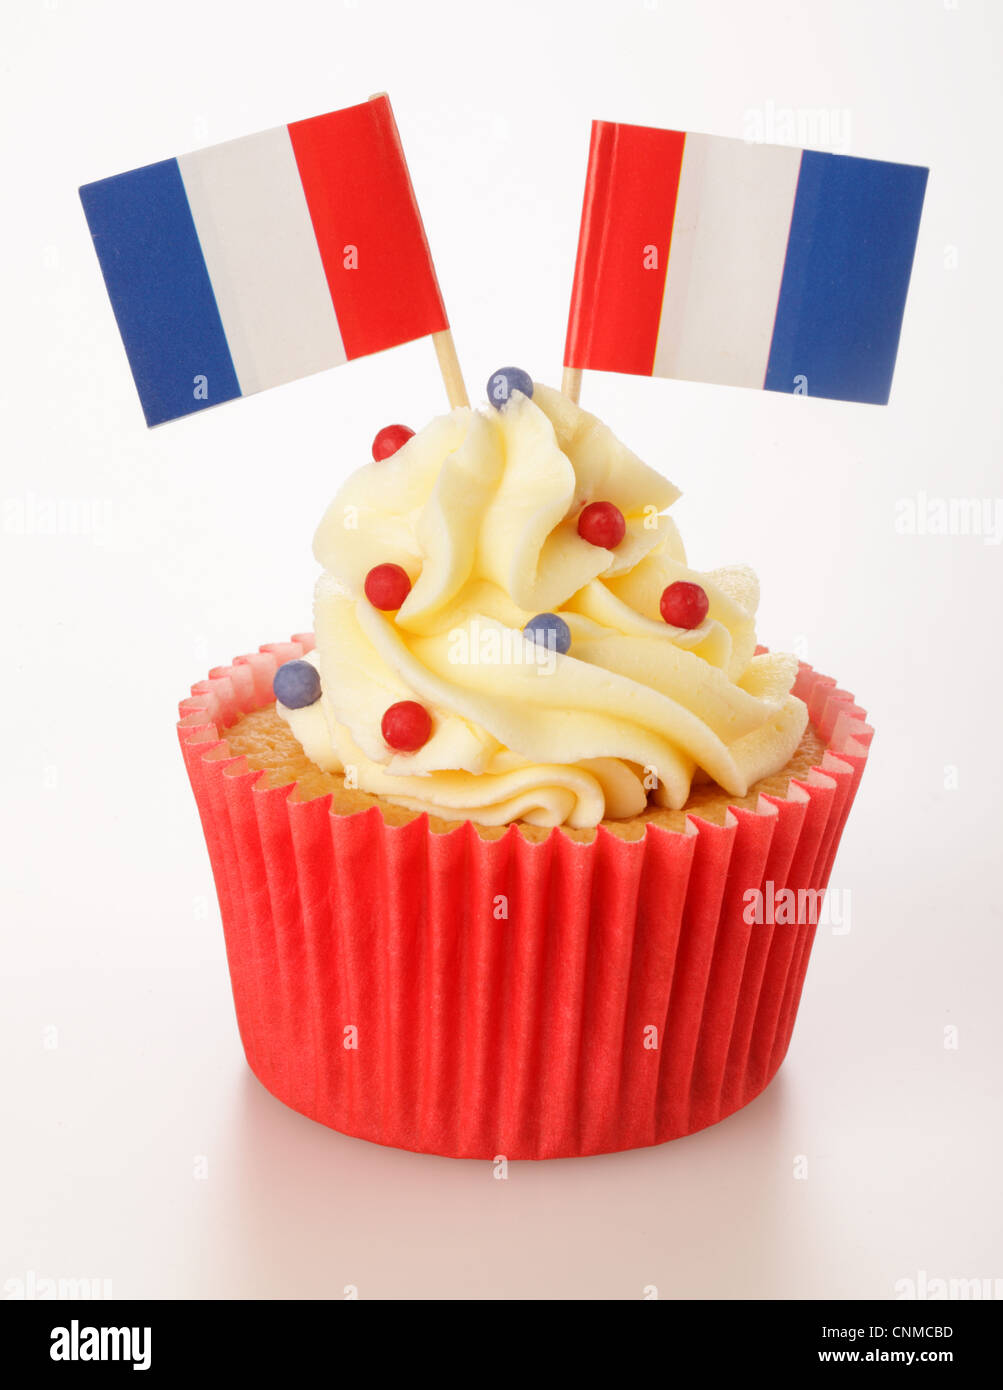 FRENCH FLAG CUPCAKE - Stock Image